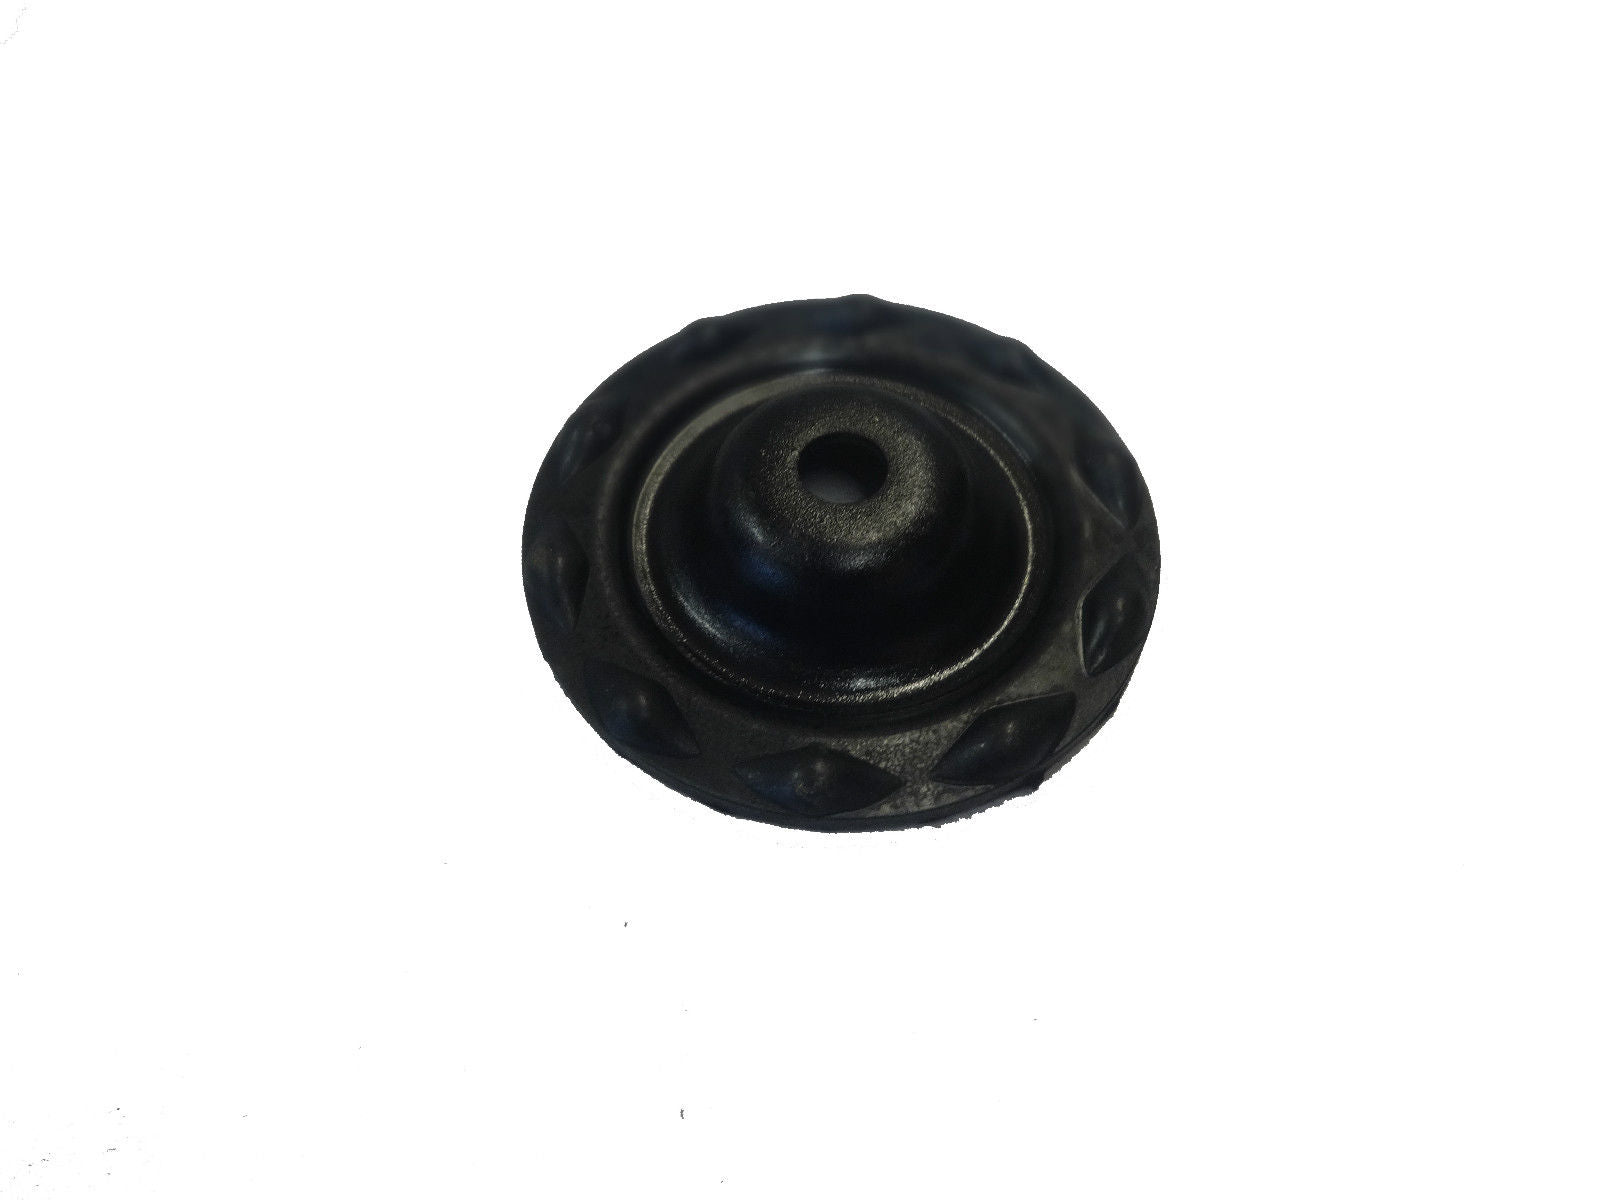 VAUXHALL VECTRA ASTRA ZAFIRA FRONT TOP SUSPENSION SHOCK MOUNT STOP 90468568